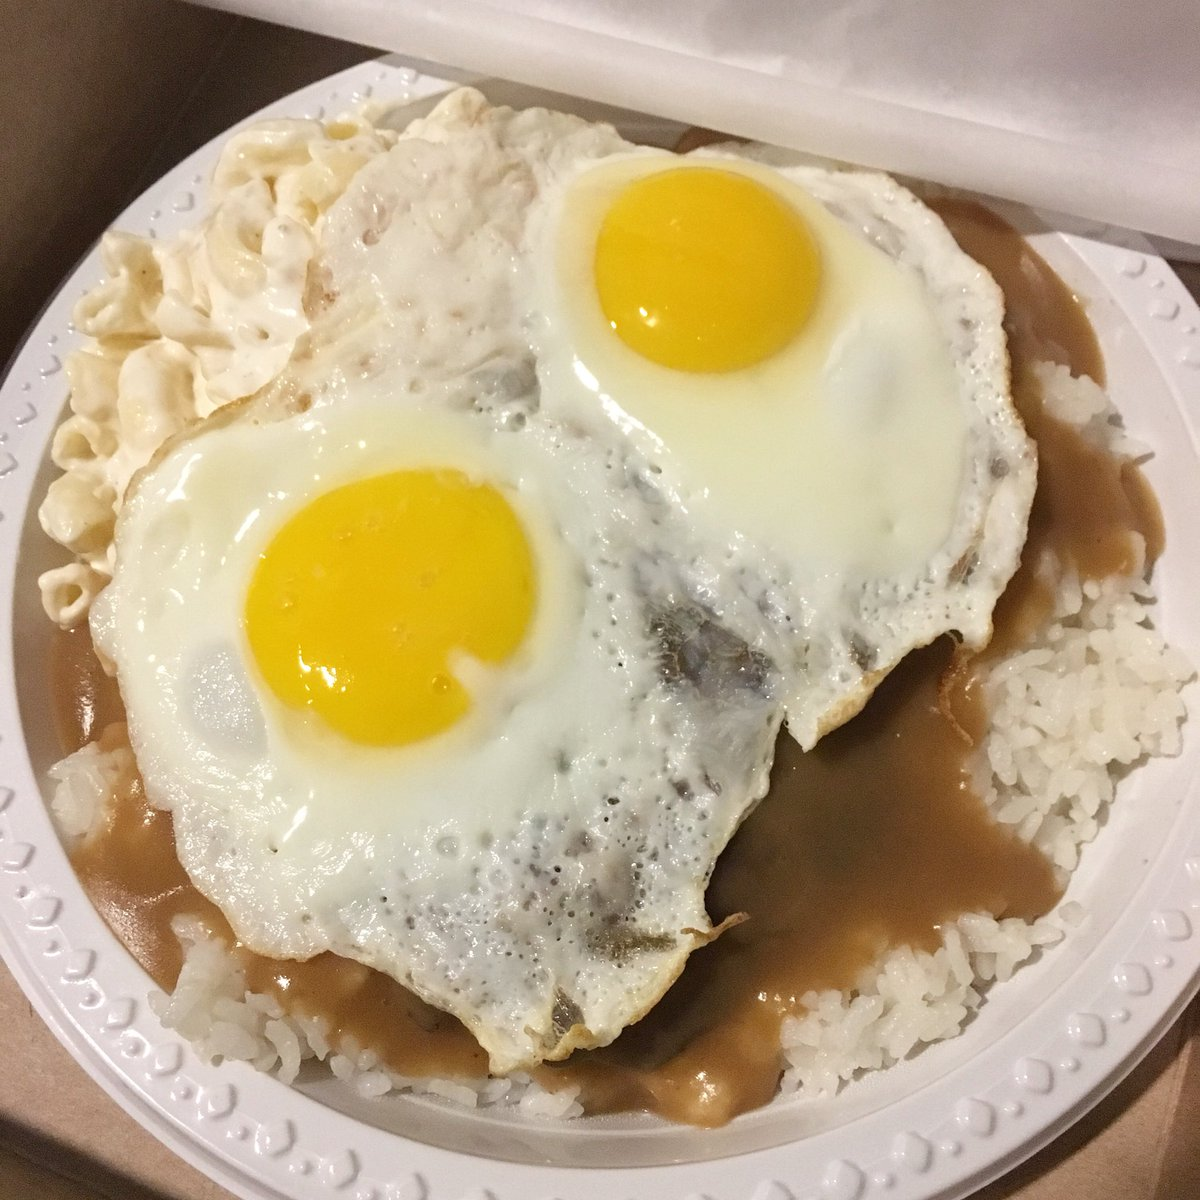 Rainbow Drive In Di Twitter This Is Eggs Actly What You Should Eat Loco Moco Plate Rainbowdrivein Rainbowgrinds Kapahulu Hawaii Locomoco Platelunch Https T Co Uio6rv1fb6